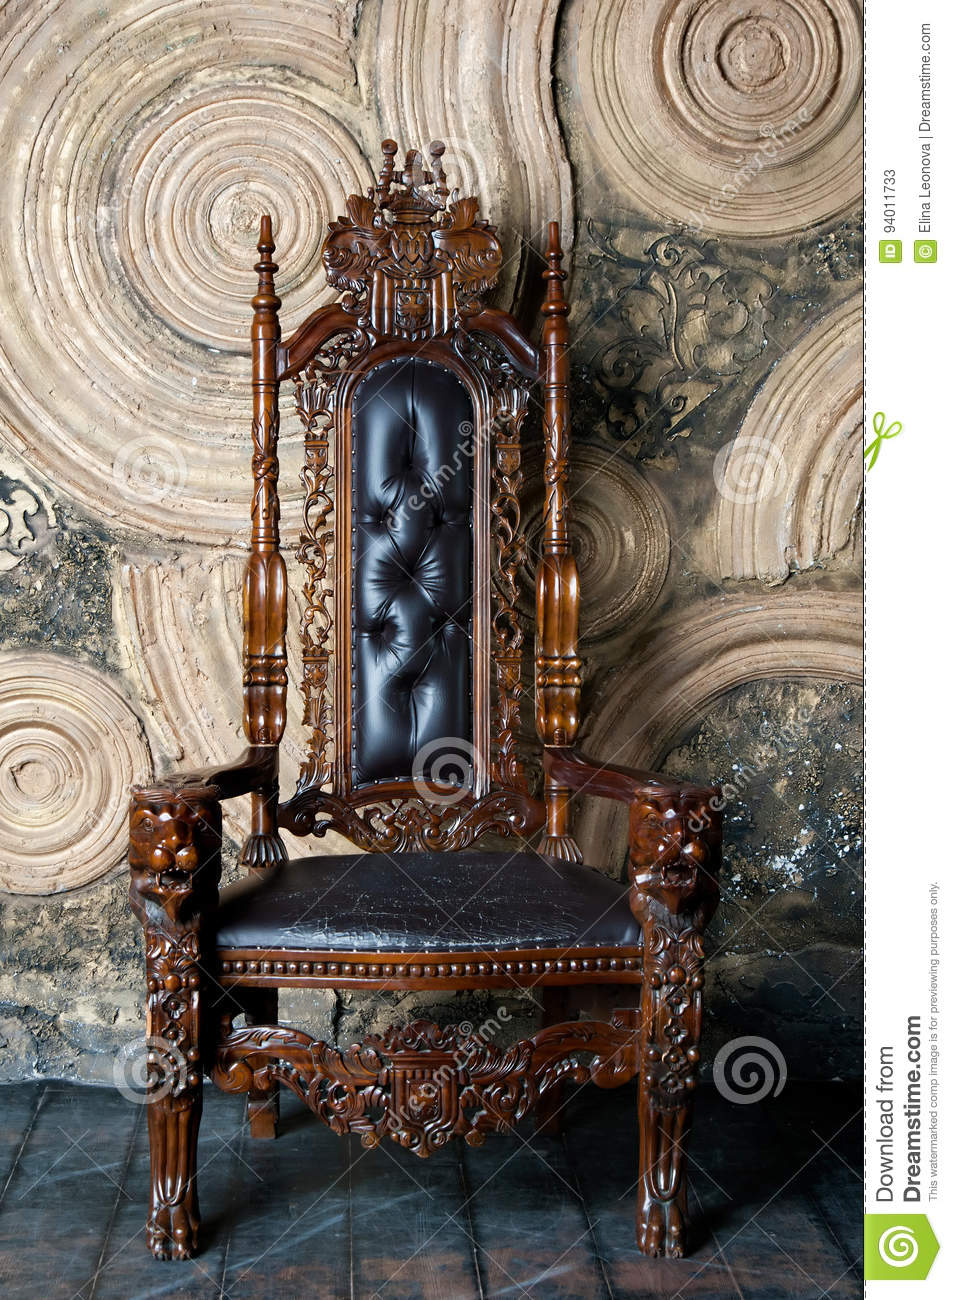 Royal King Chair - Royalty free stock photo download royal throne for king